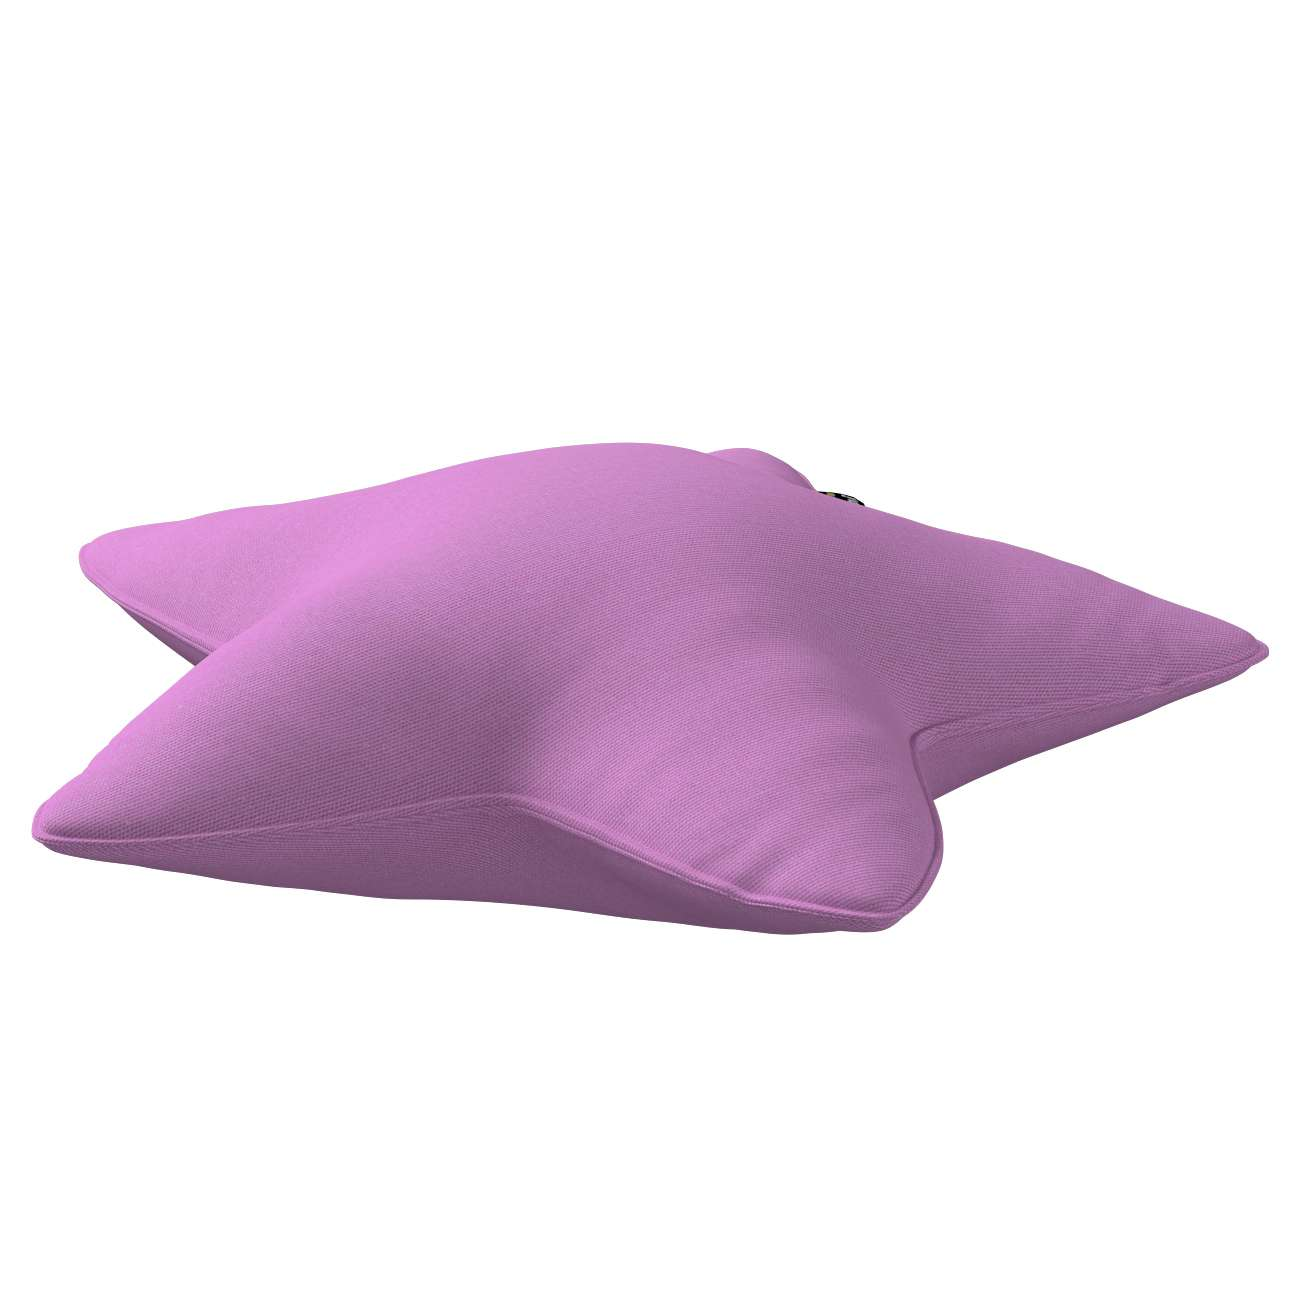 Lucky Star pillow in collection Happiness, fabric: 133-38